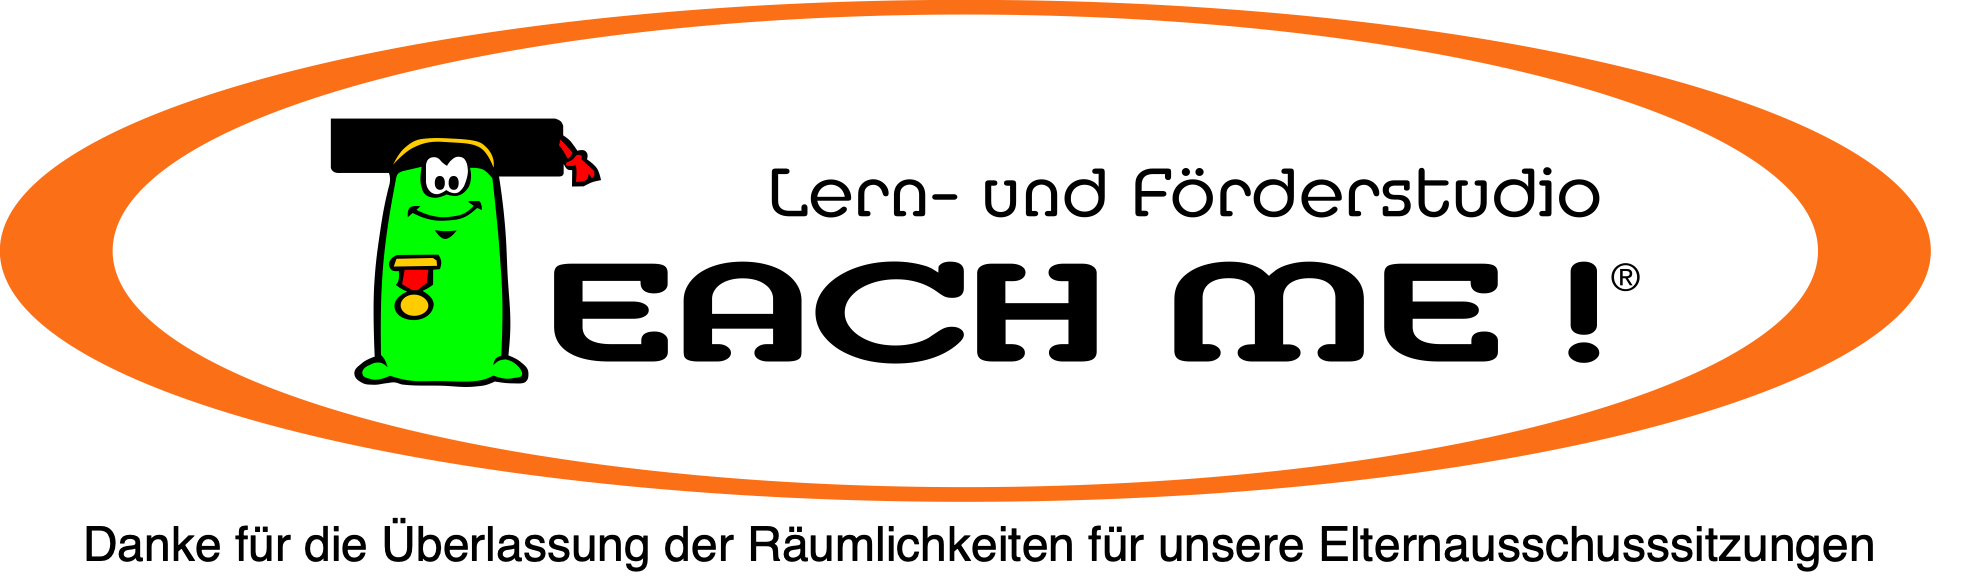 TeachMe Logo 1